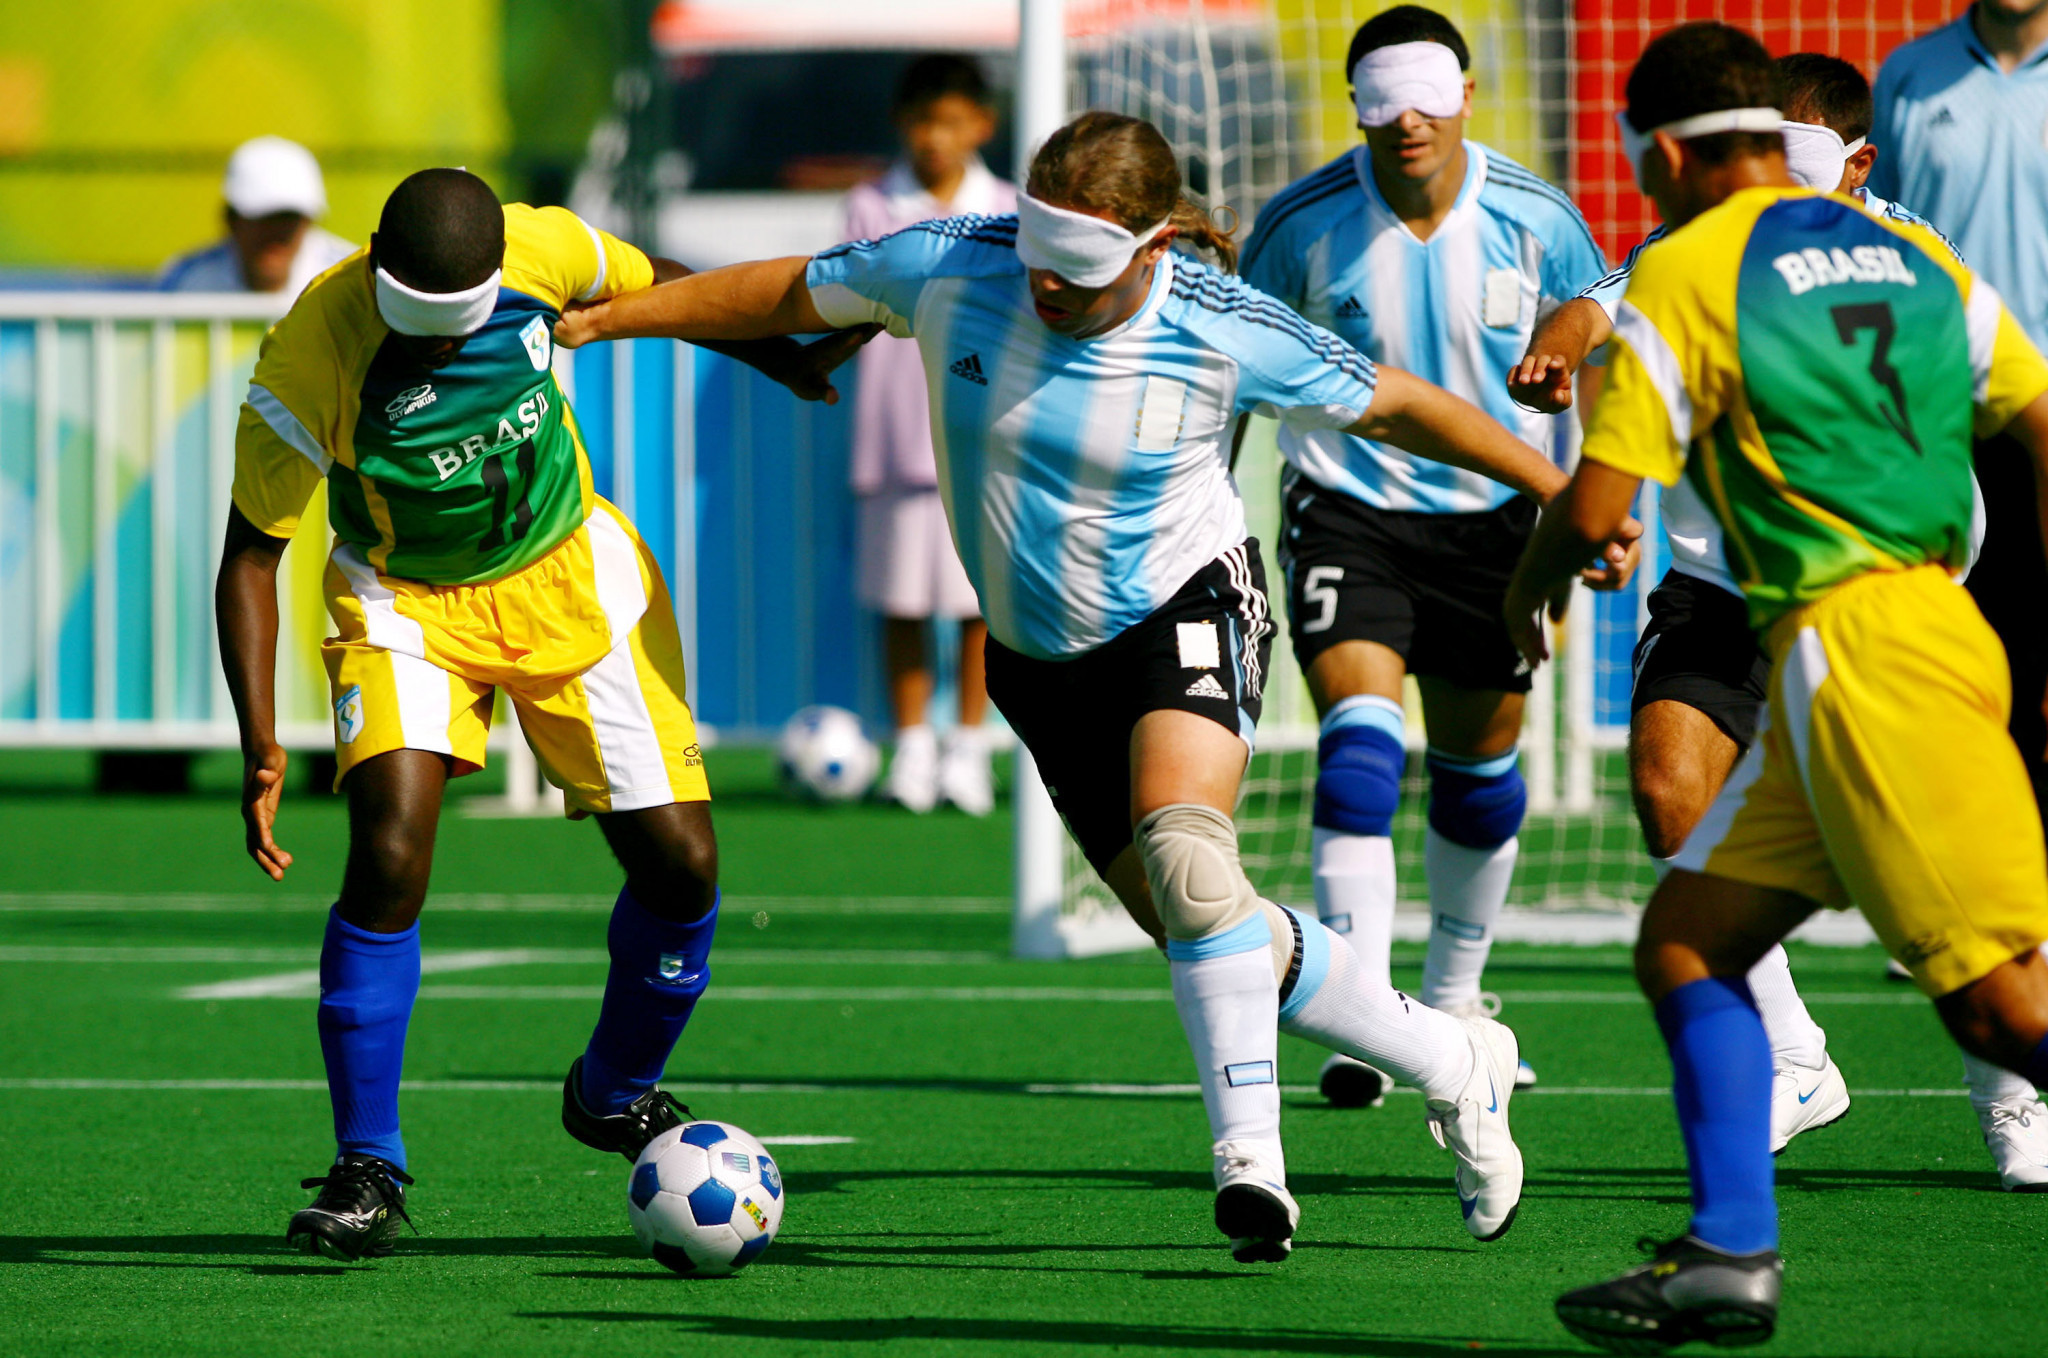 Two-time world champion Cerega becomes blind football coach